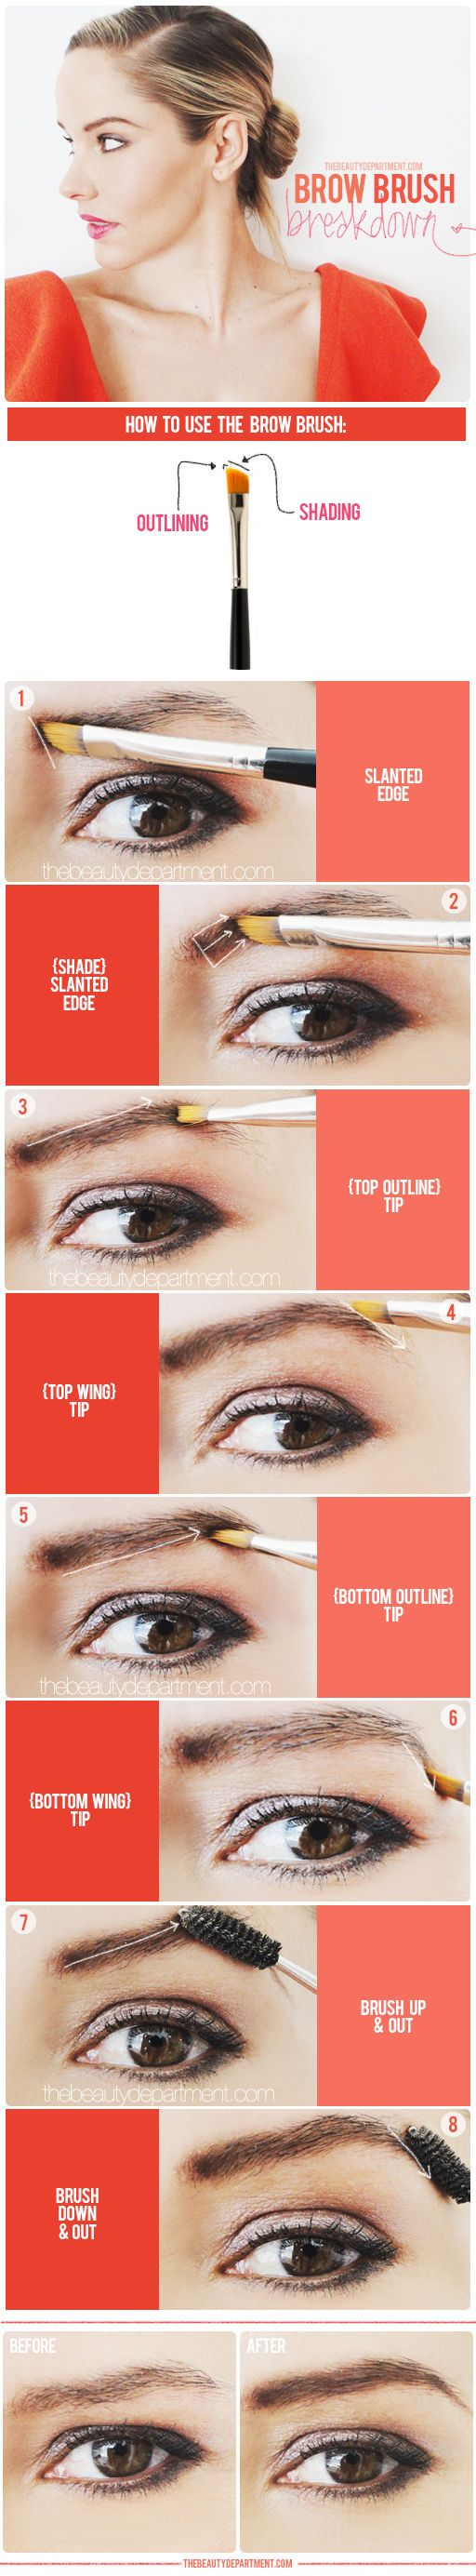 How to use a brow brush to create gorgeous (and not overdone) brows!